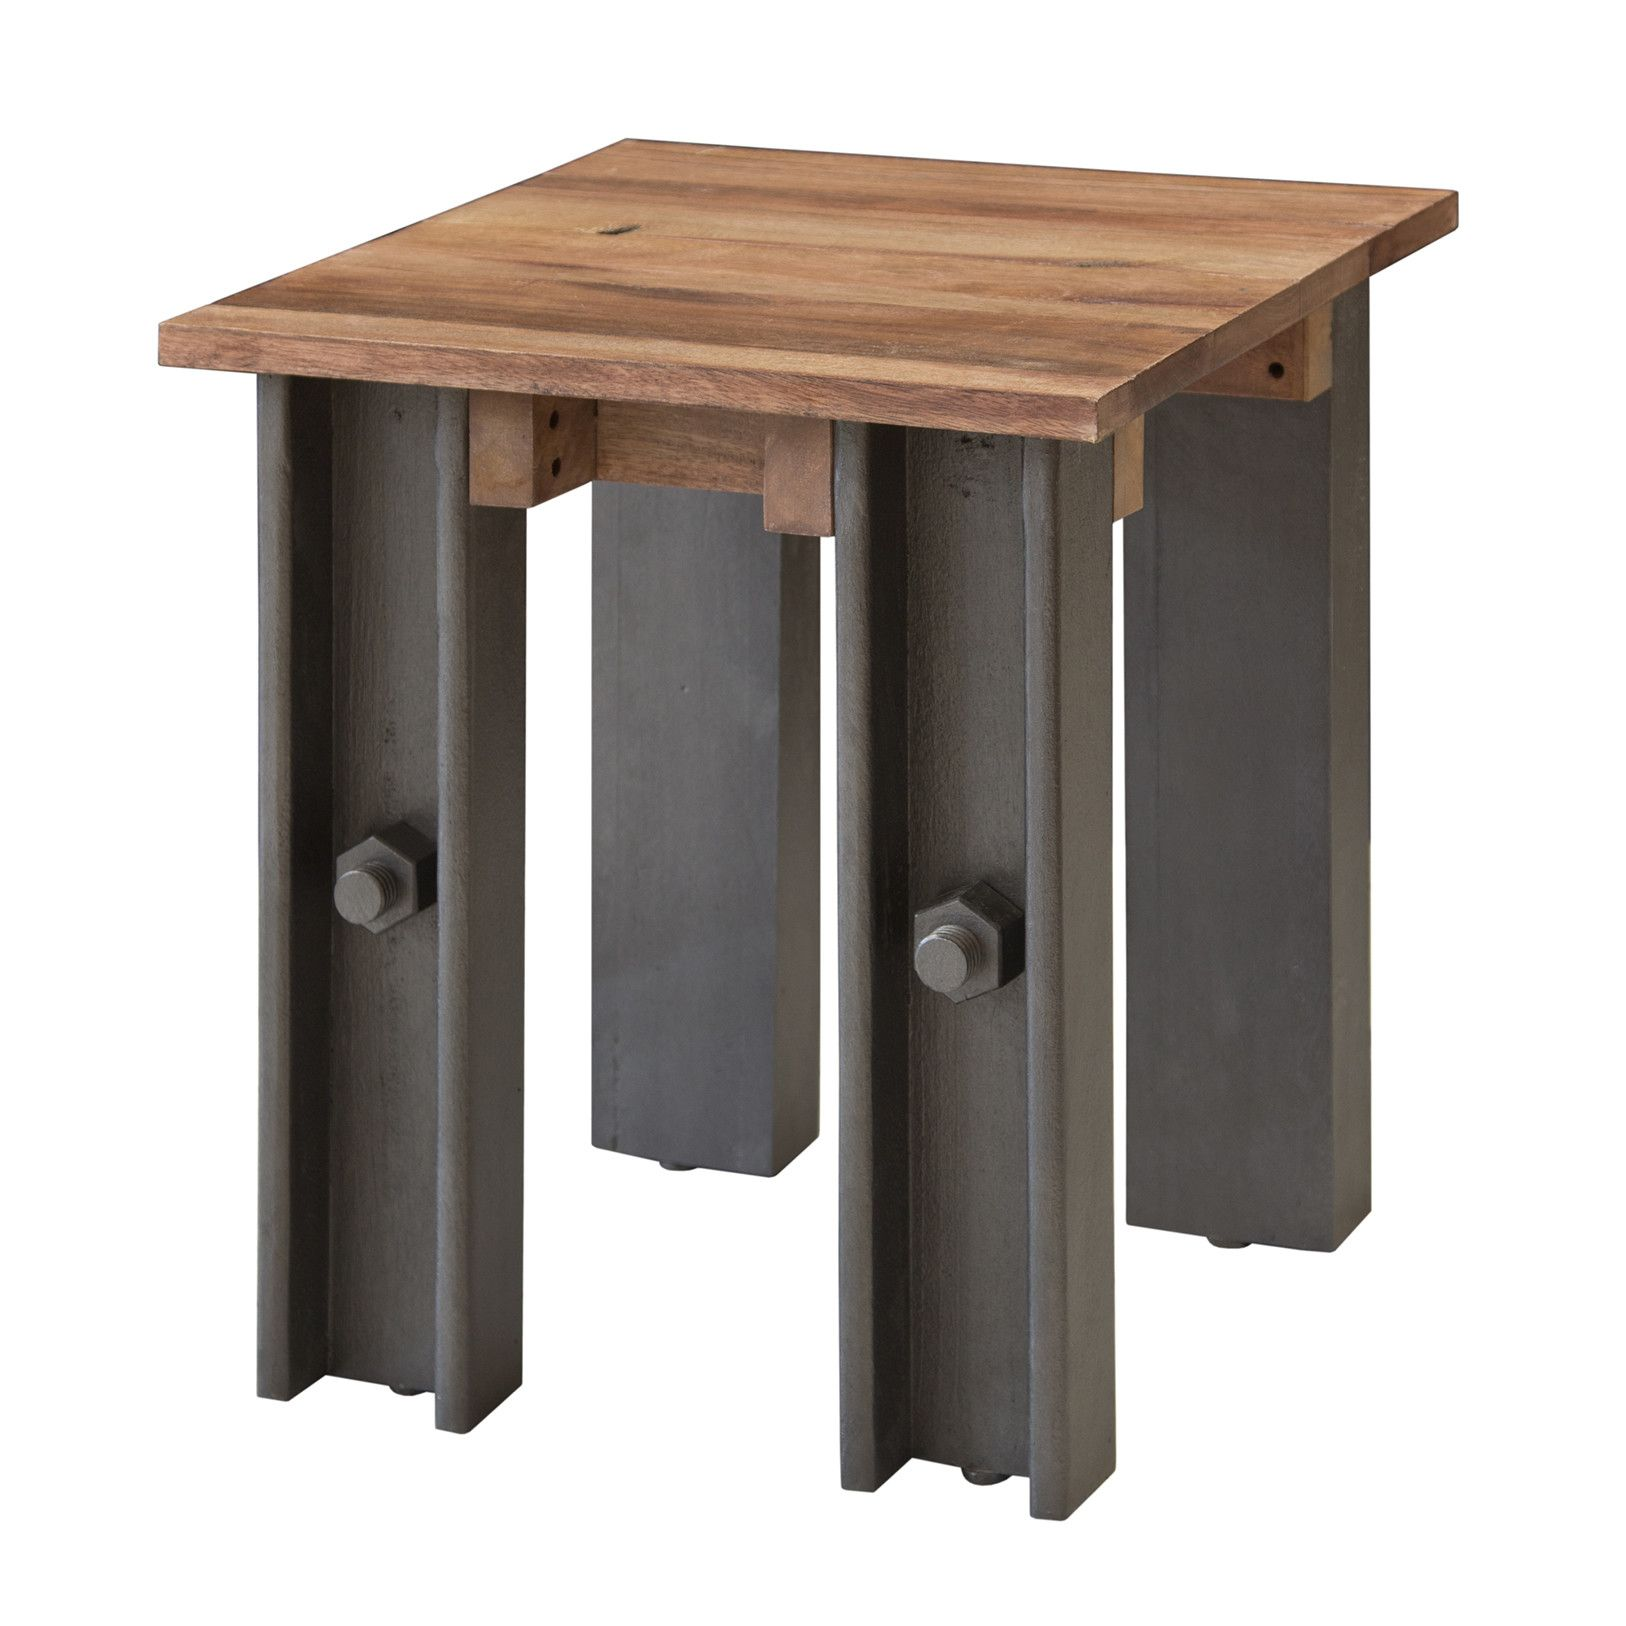 Thomas Telford Steel Girder Industrial Side Table Industrial